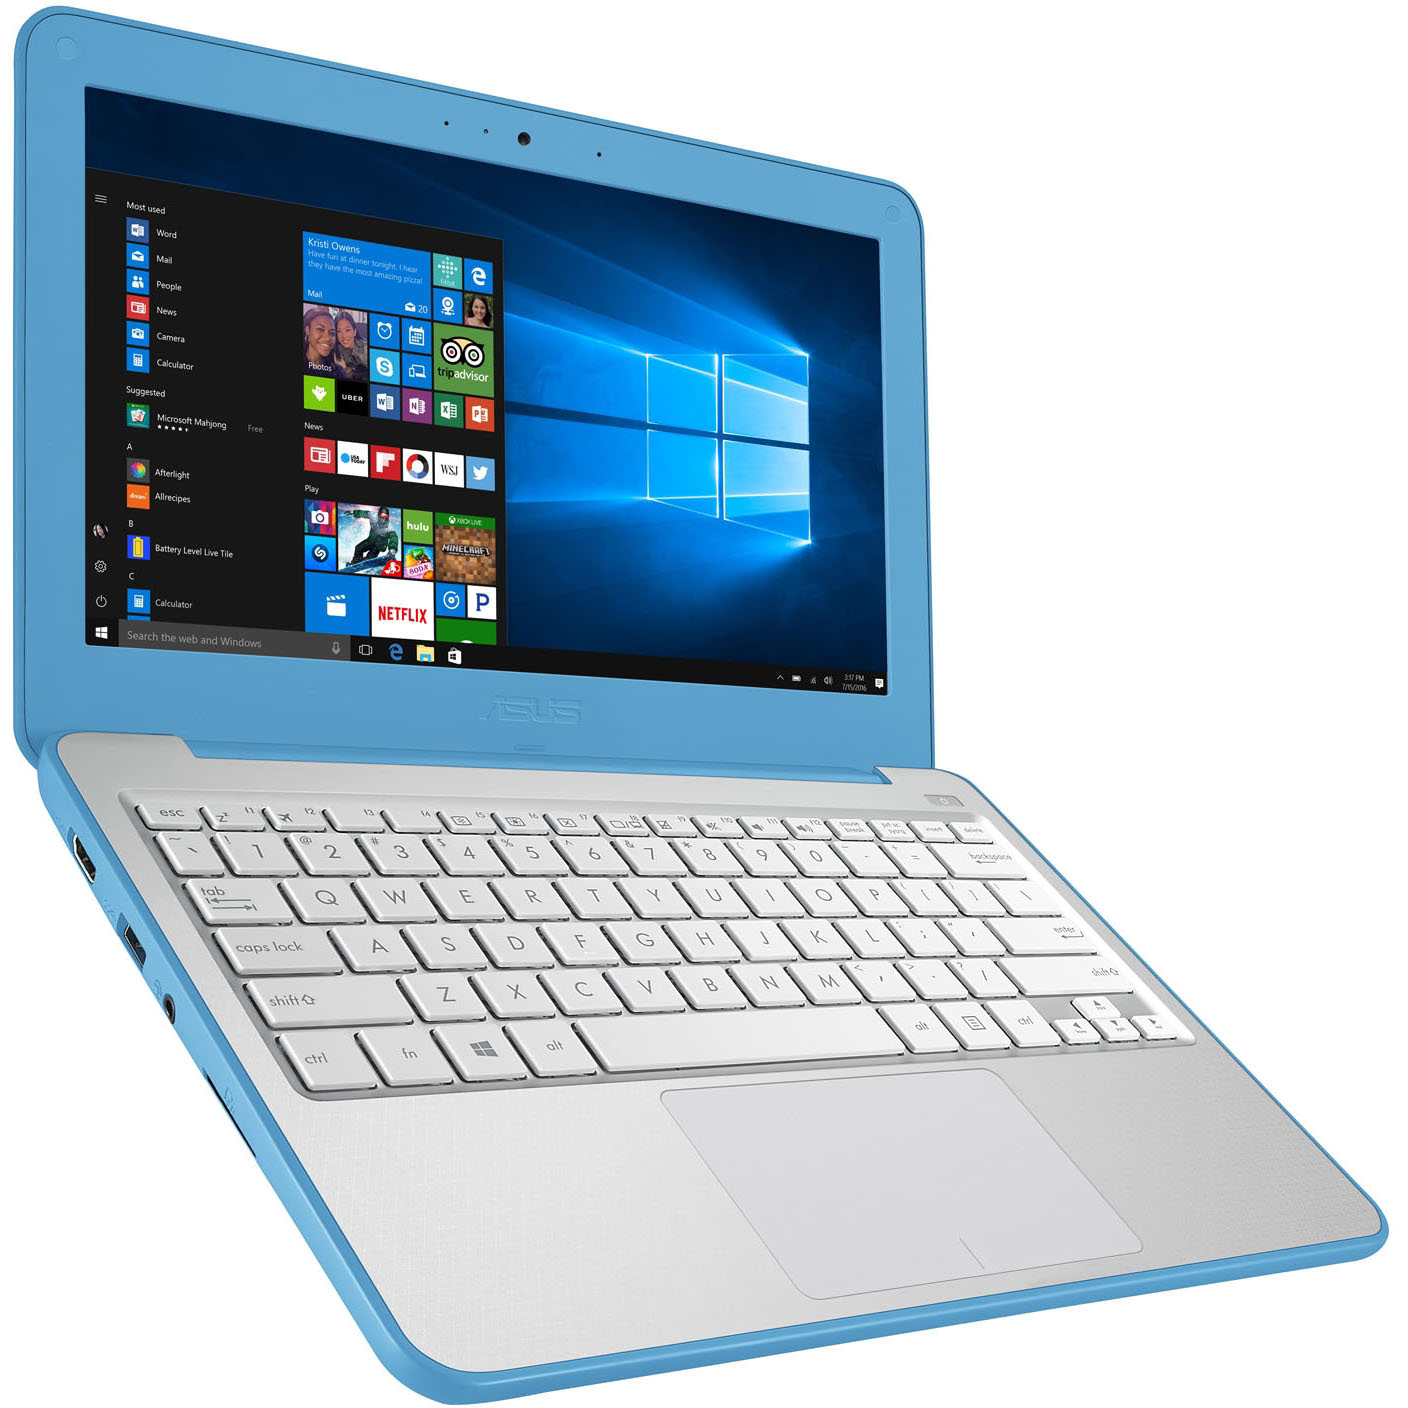 "Refurbished ASUS W202NA-DH02 Vivobook 11.6"" Laptop 2.4 GHz 4GB 64GB eMMC Blue/Silver"